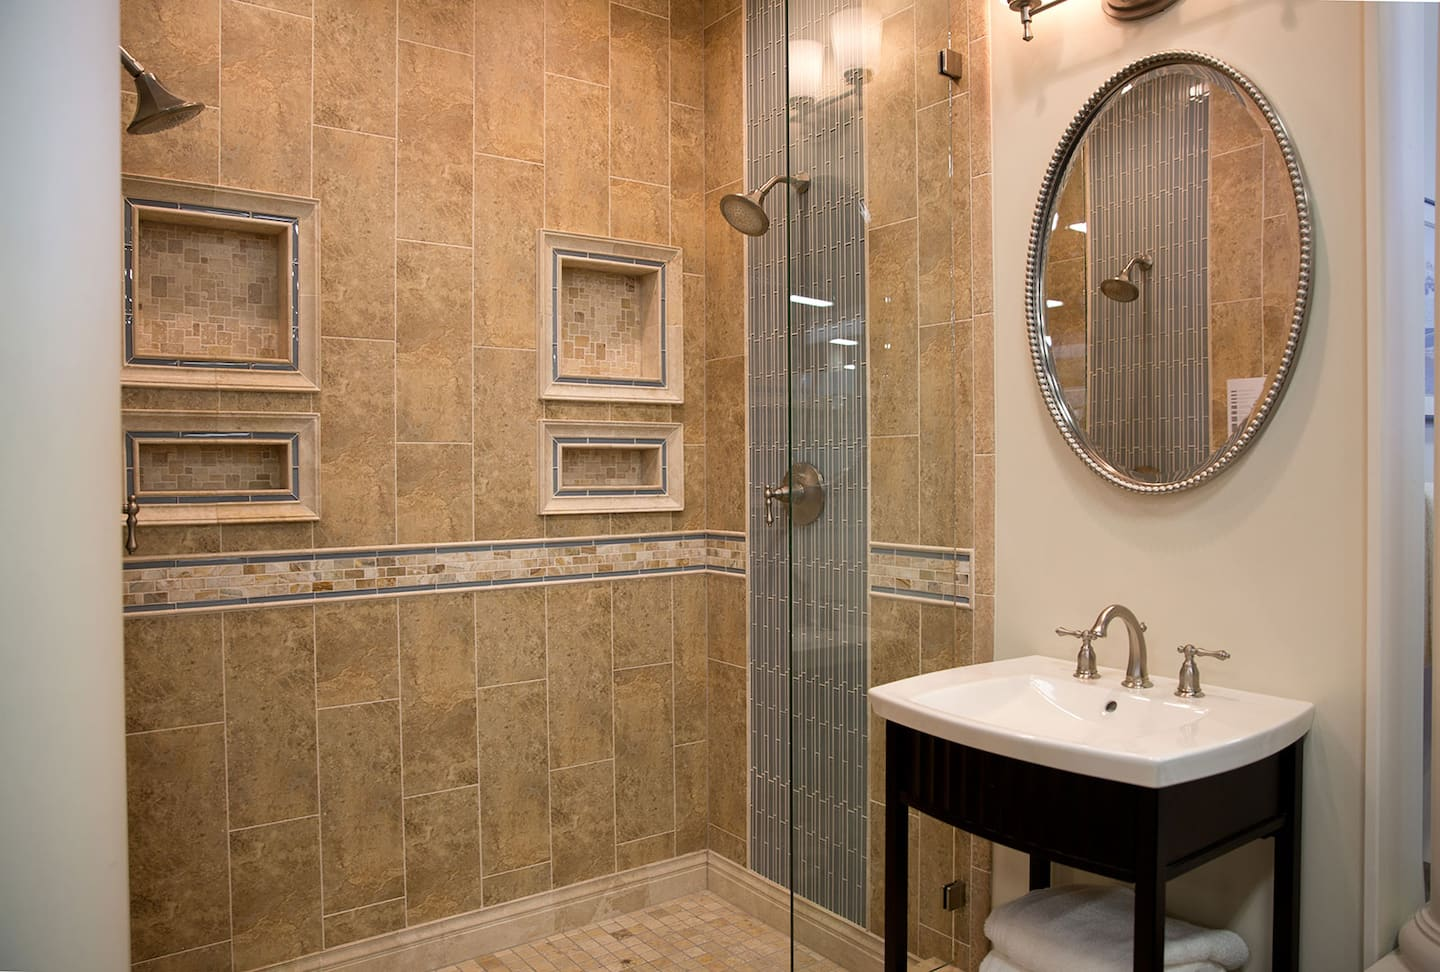 shower with ceramic tile. How Much Does a Bathroom Remodel Cost    Angie s List